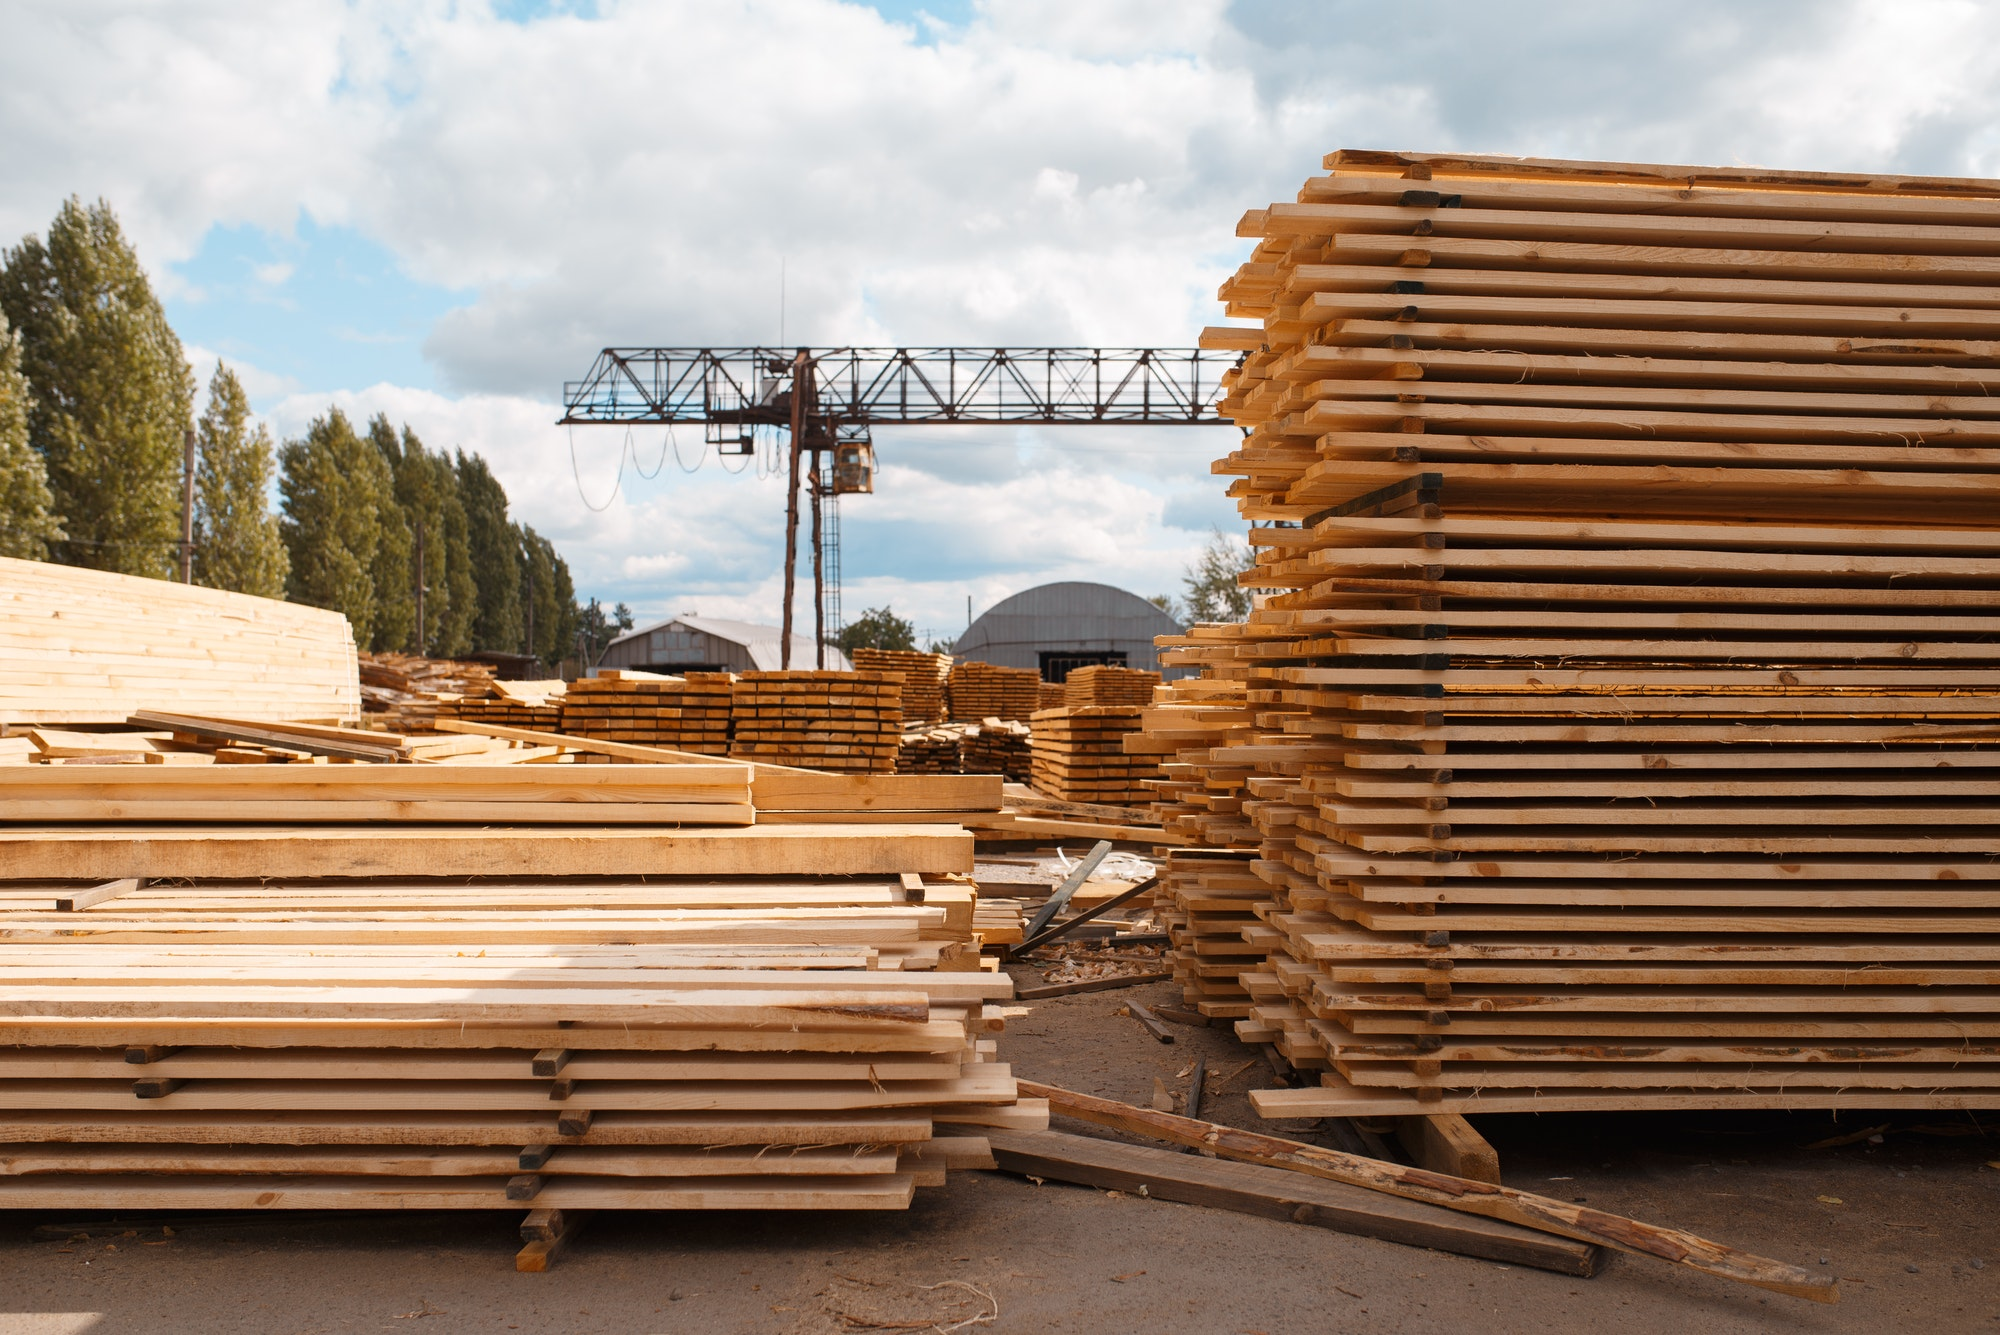 Stacks of boards on timber mill warehouse